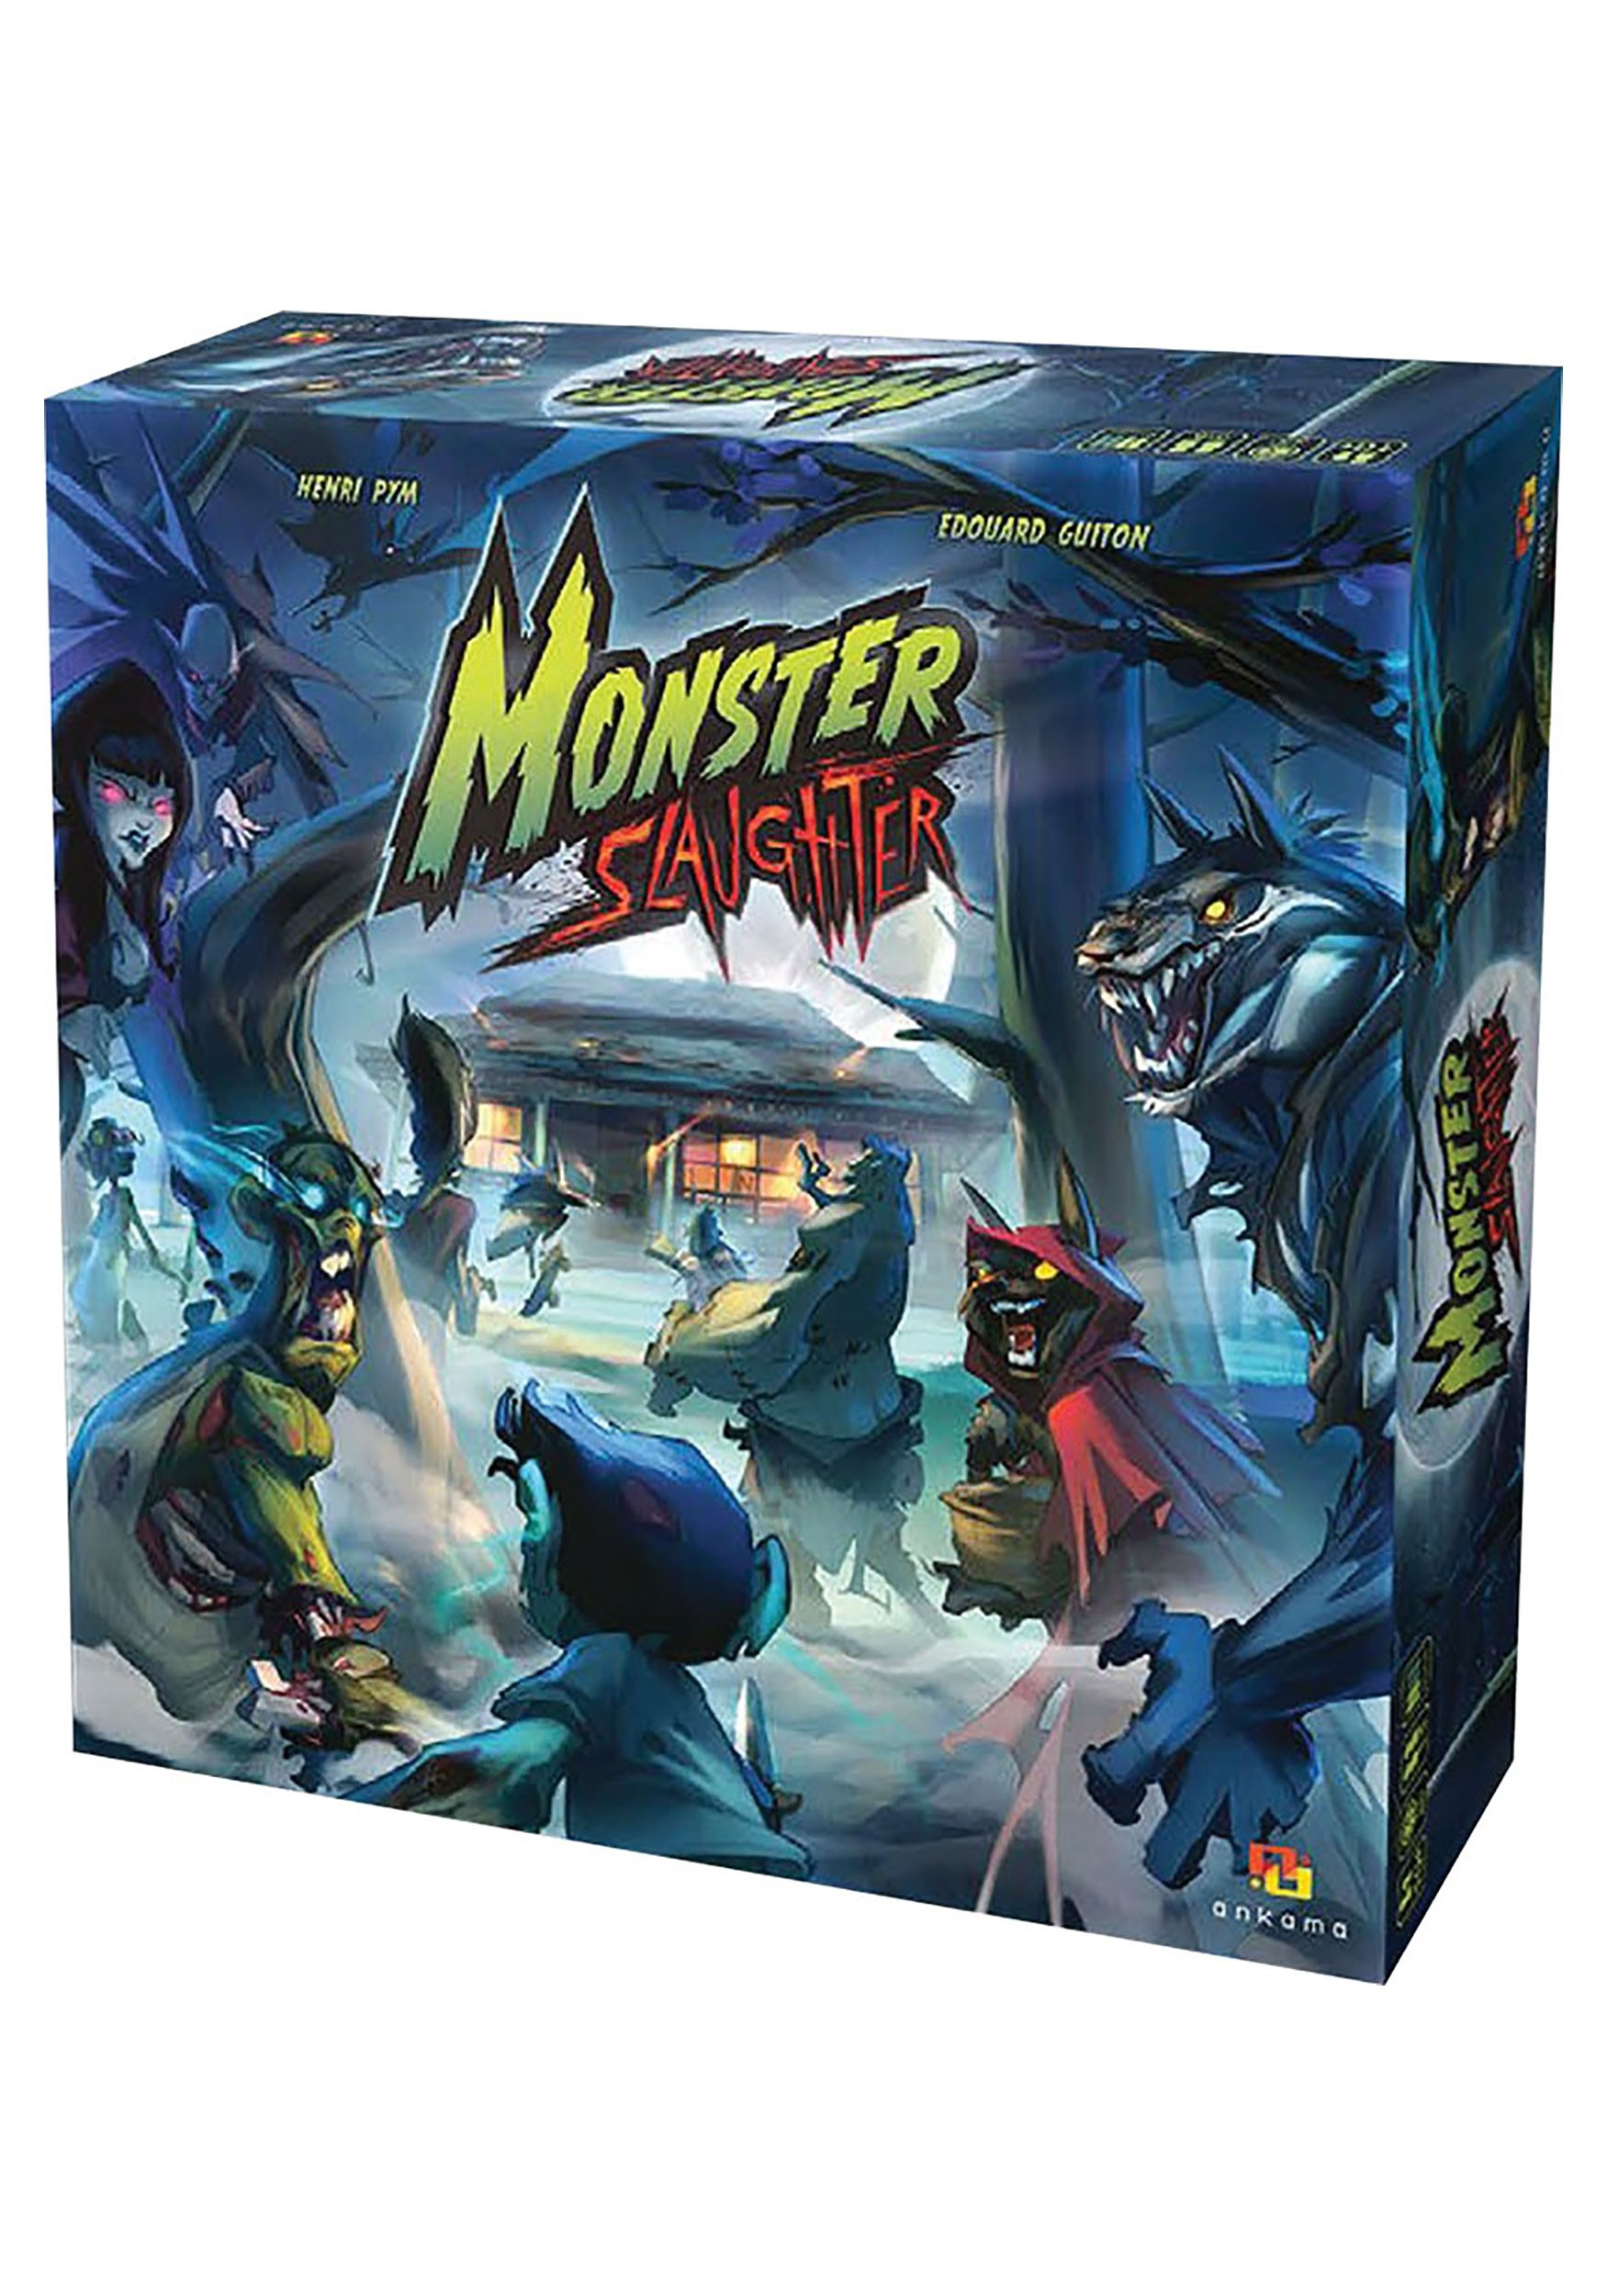 The Monster Slaughter Board Game